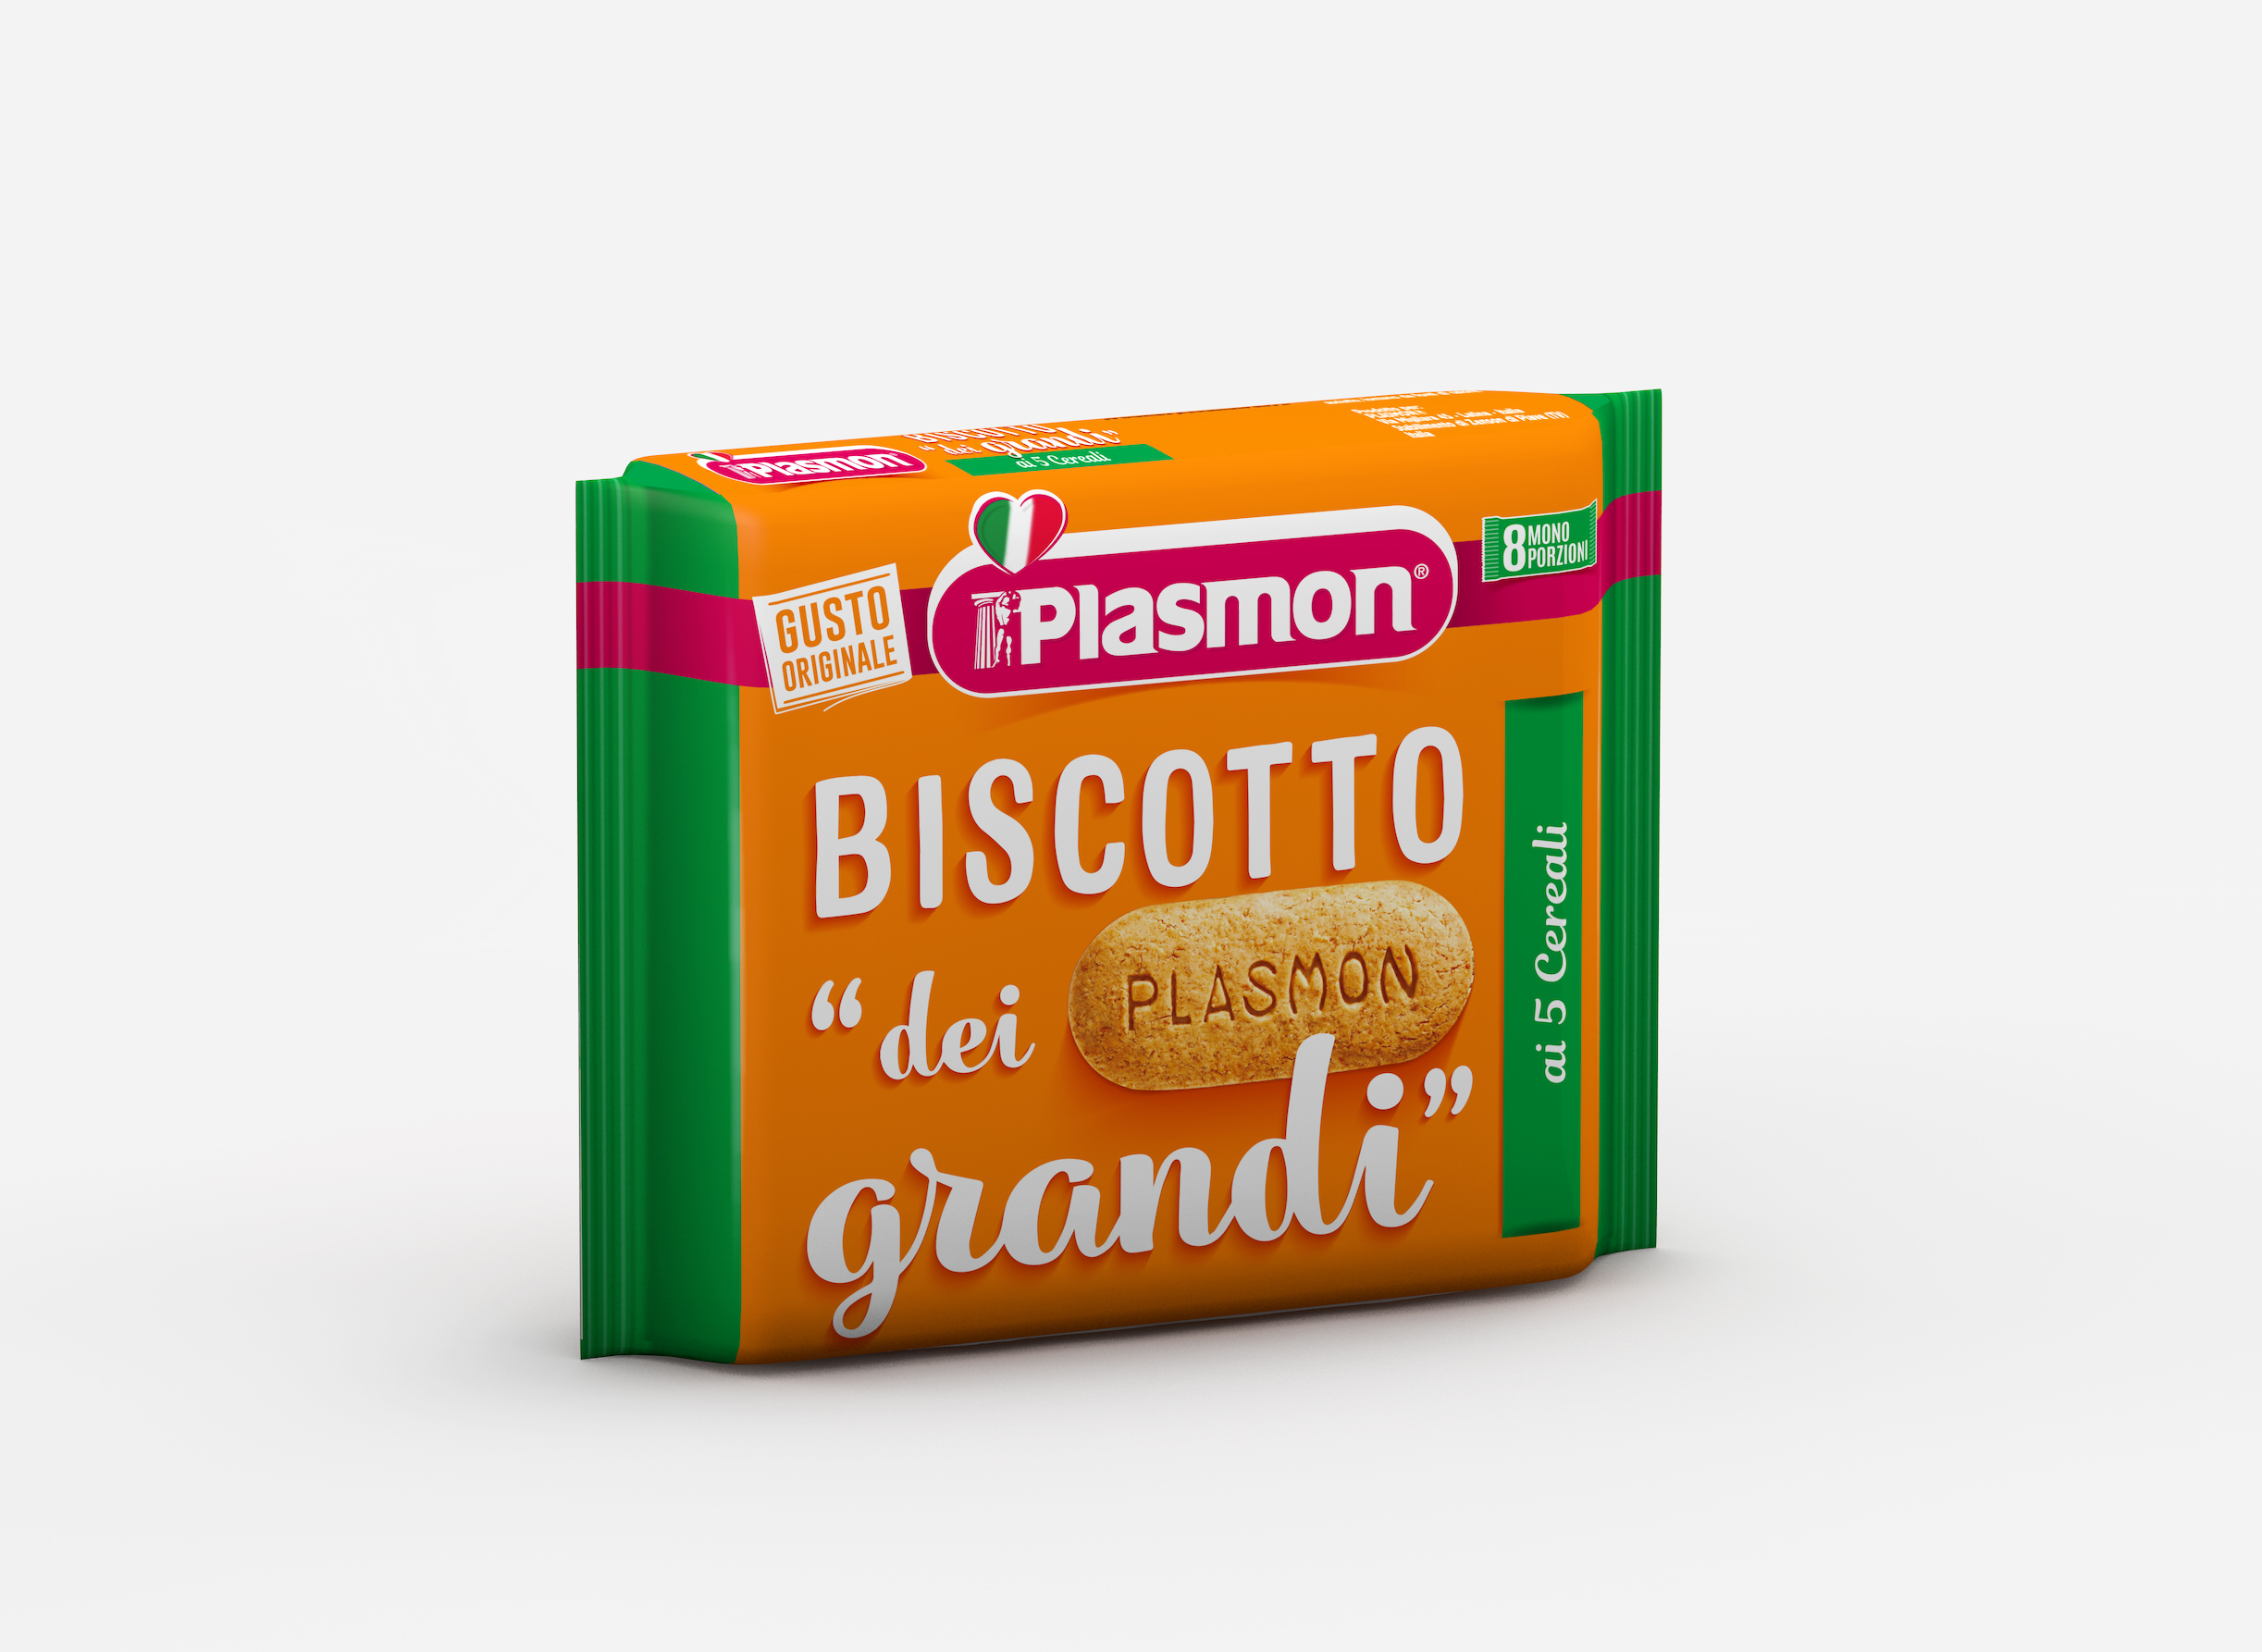 Plasmon Biscuit for Grown ups with cereal